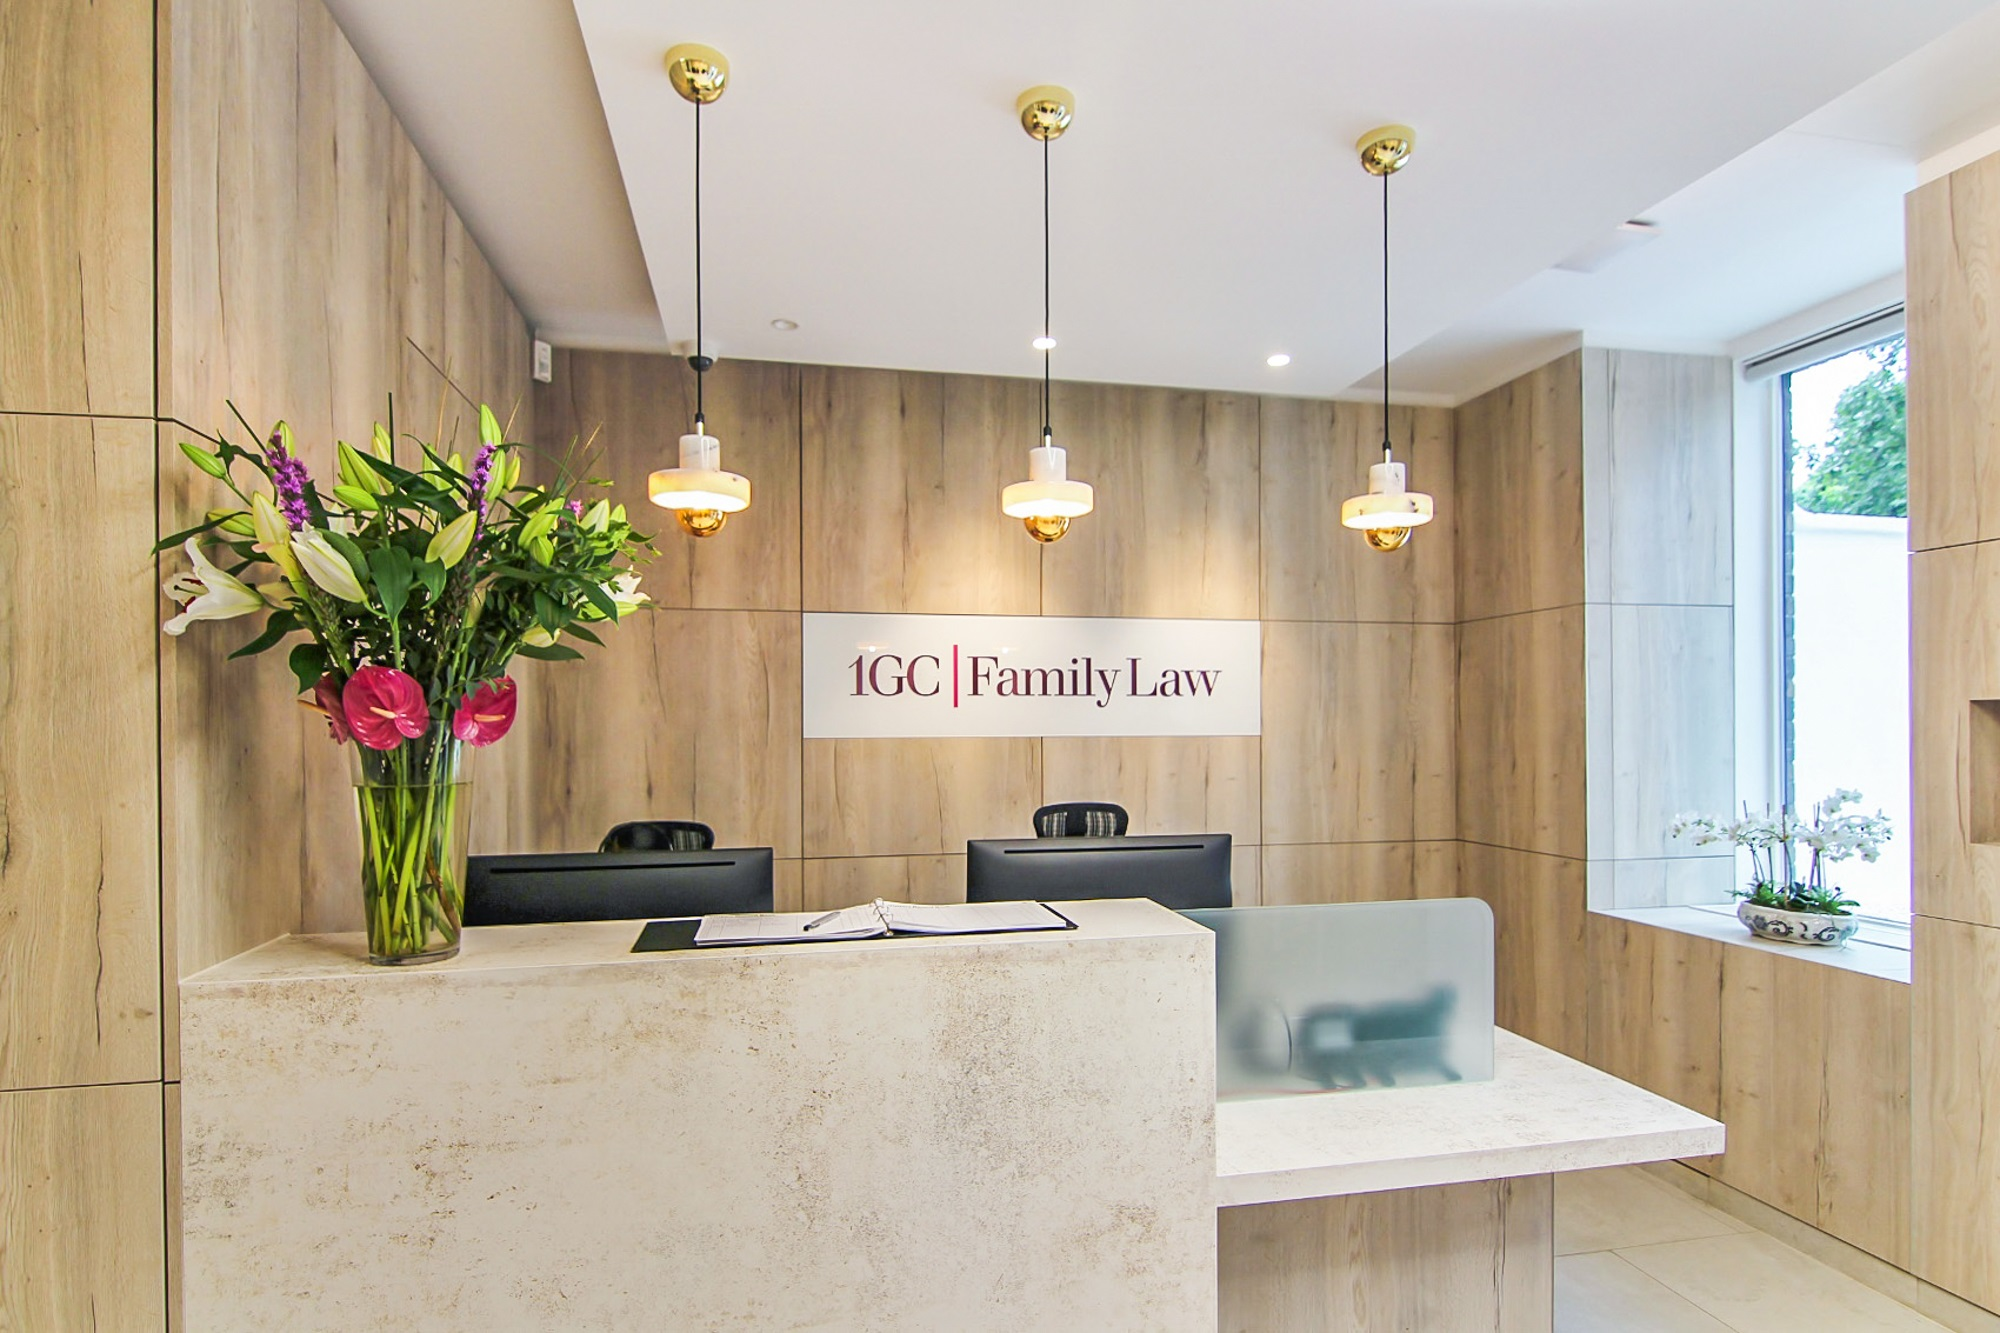 reception area with hanging lights and flower vase